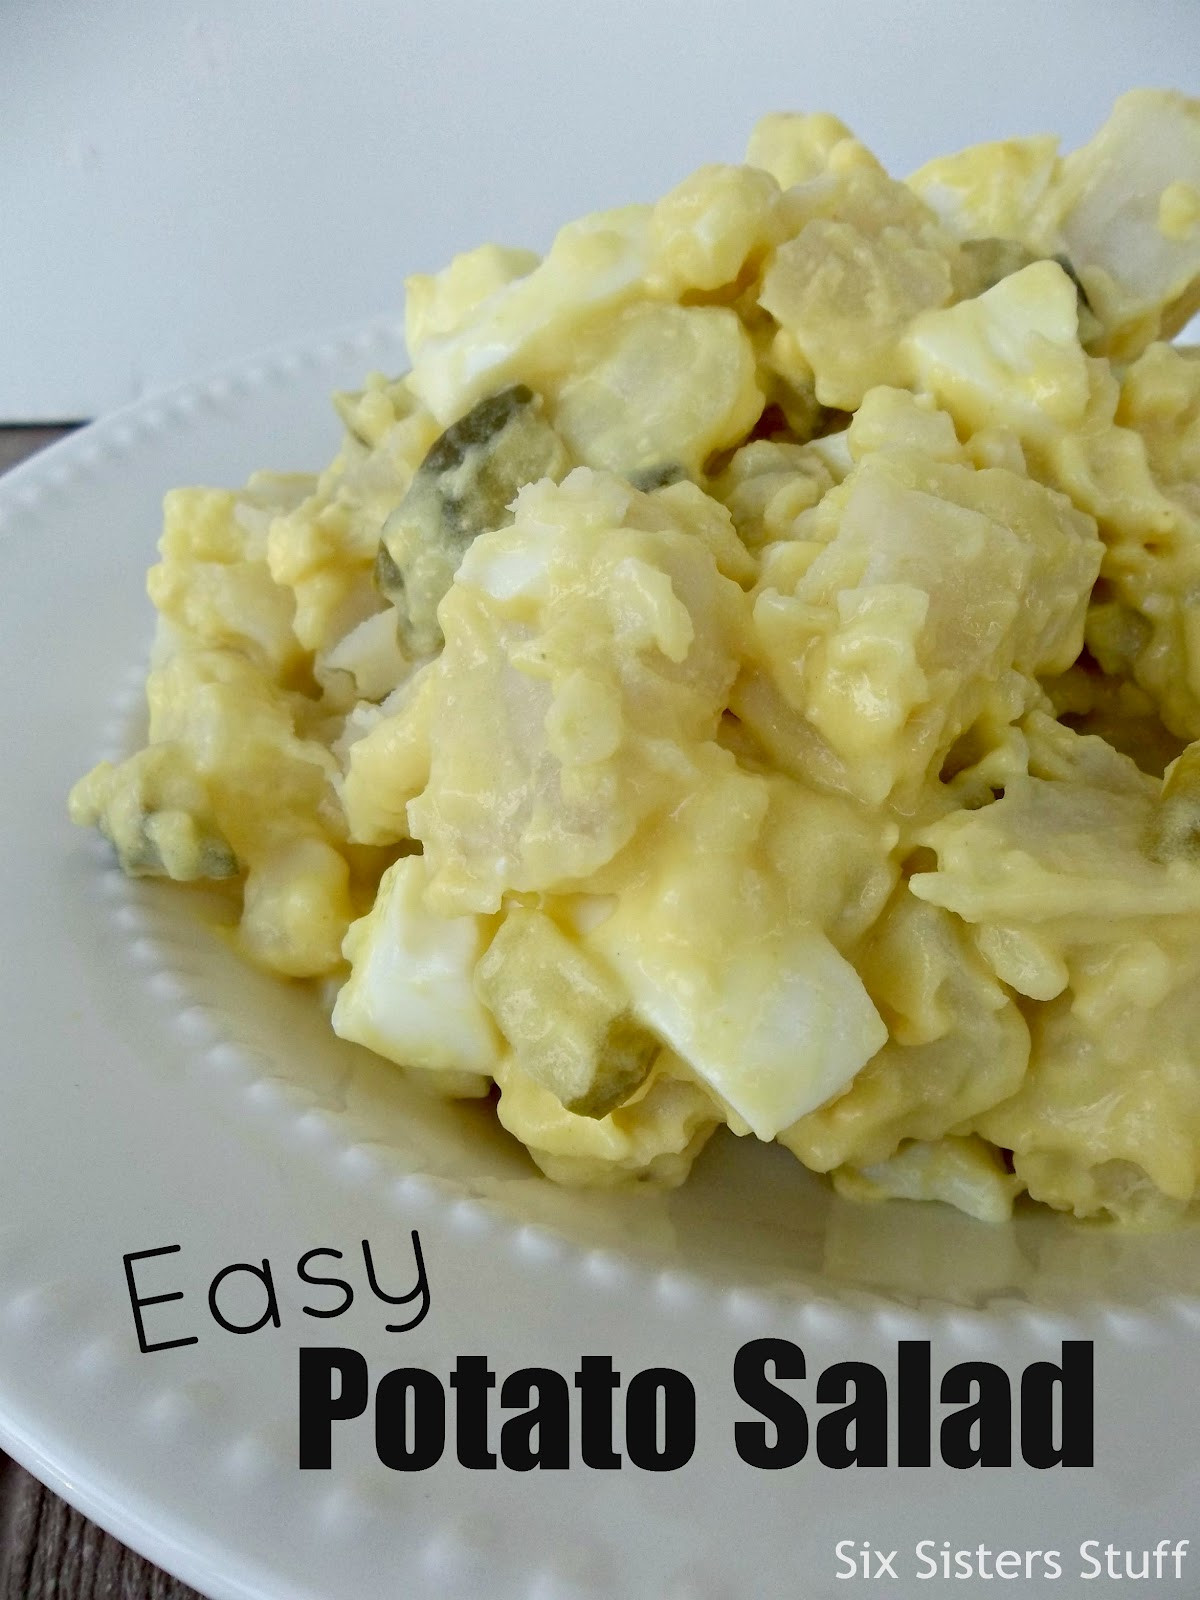 Easy Potato Salad  Mom s Easy Potato Salad Side Dish Six Sisters Stuff